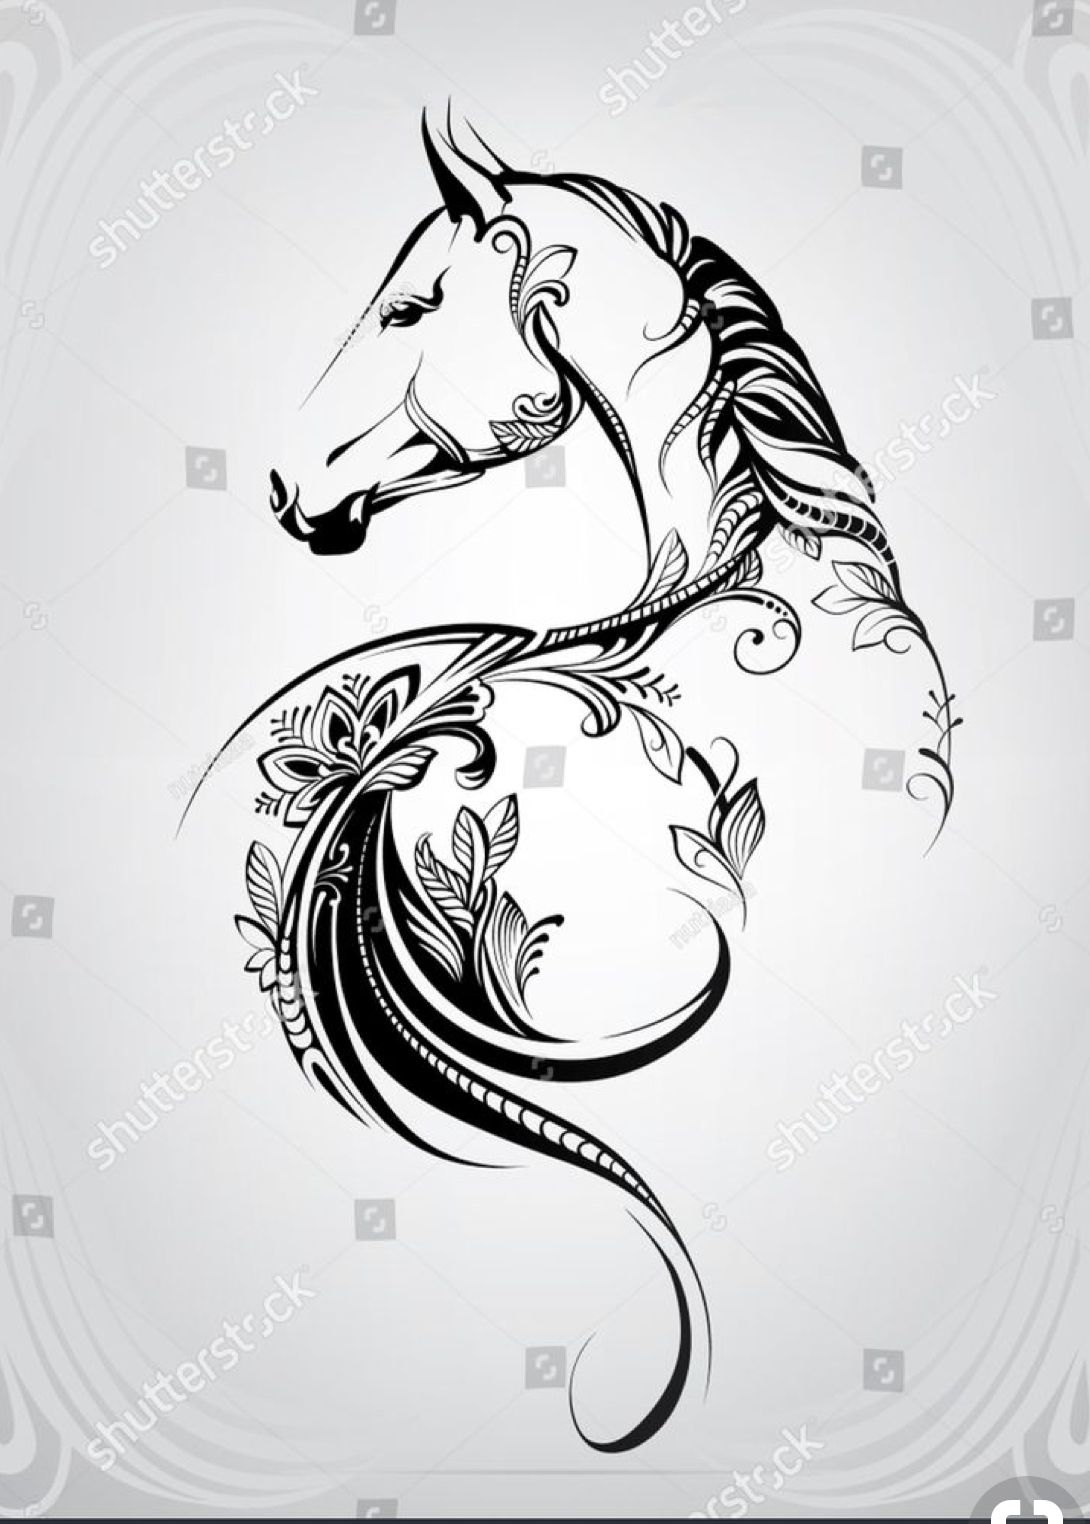 Pin By Dawn Capwell On Clip Art Horse Tattoo Horse Tattoo Design Horse Drawings